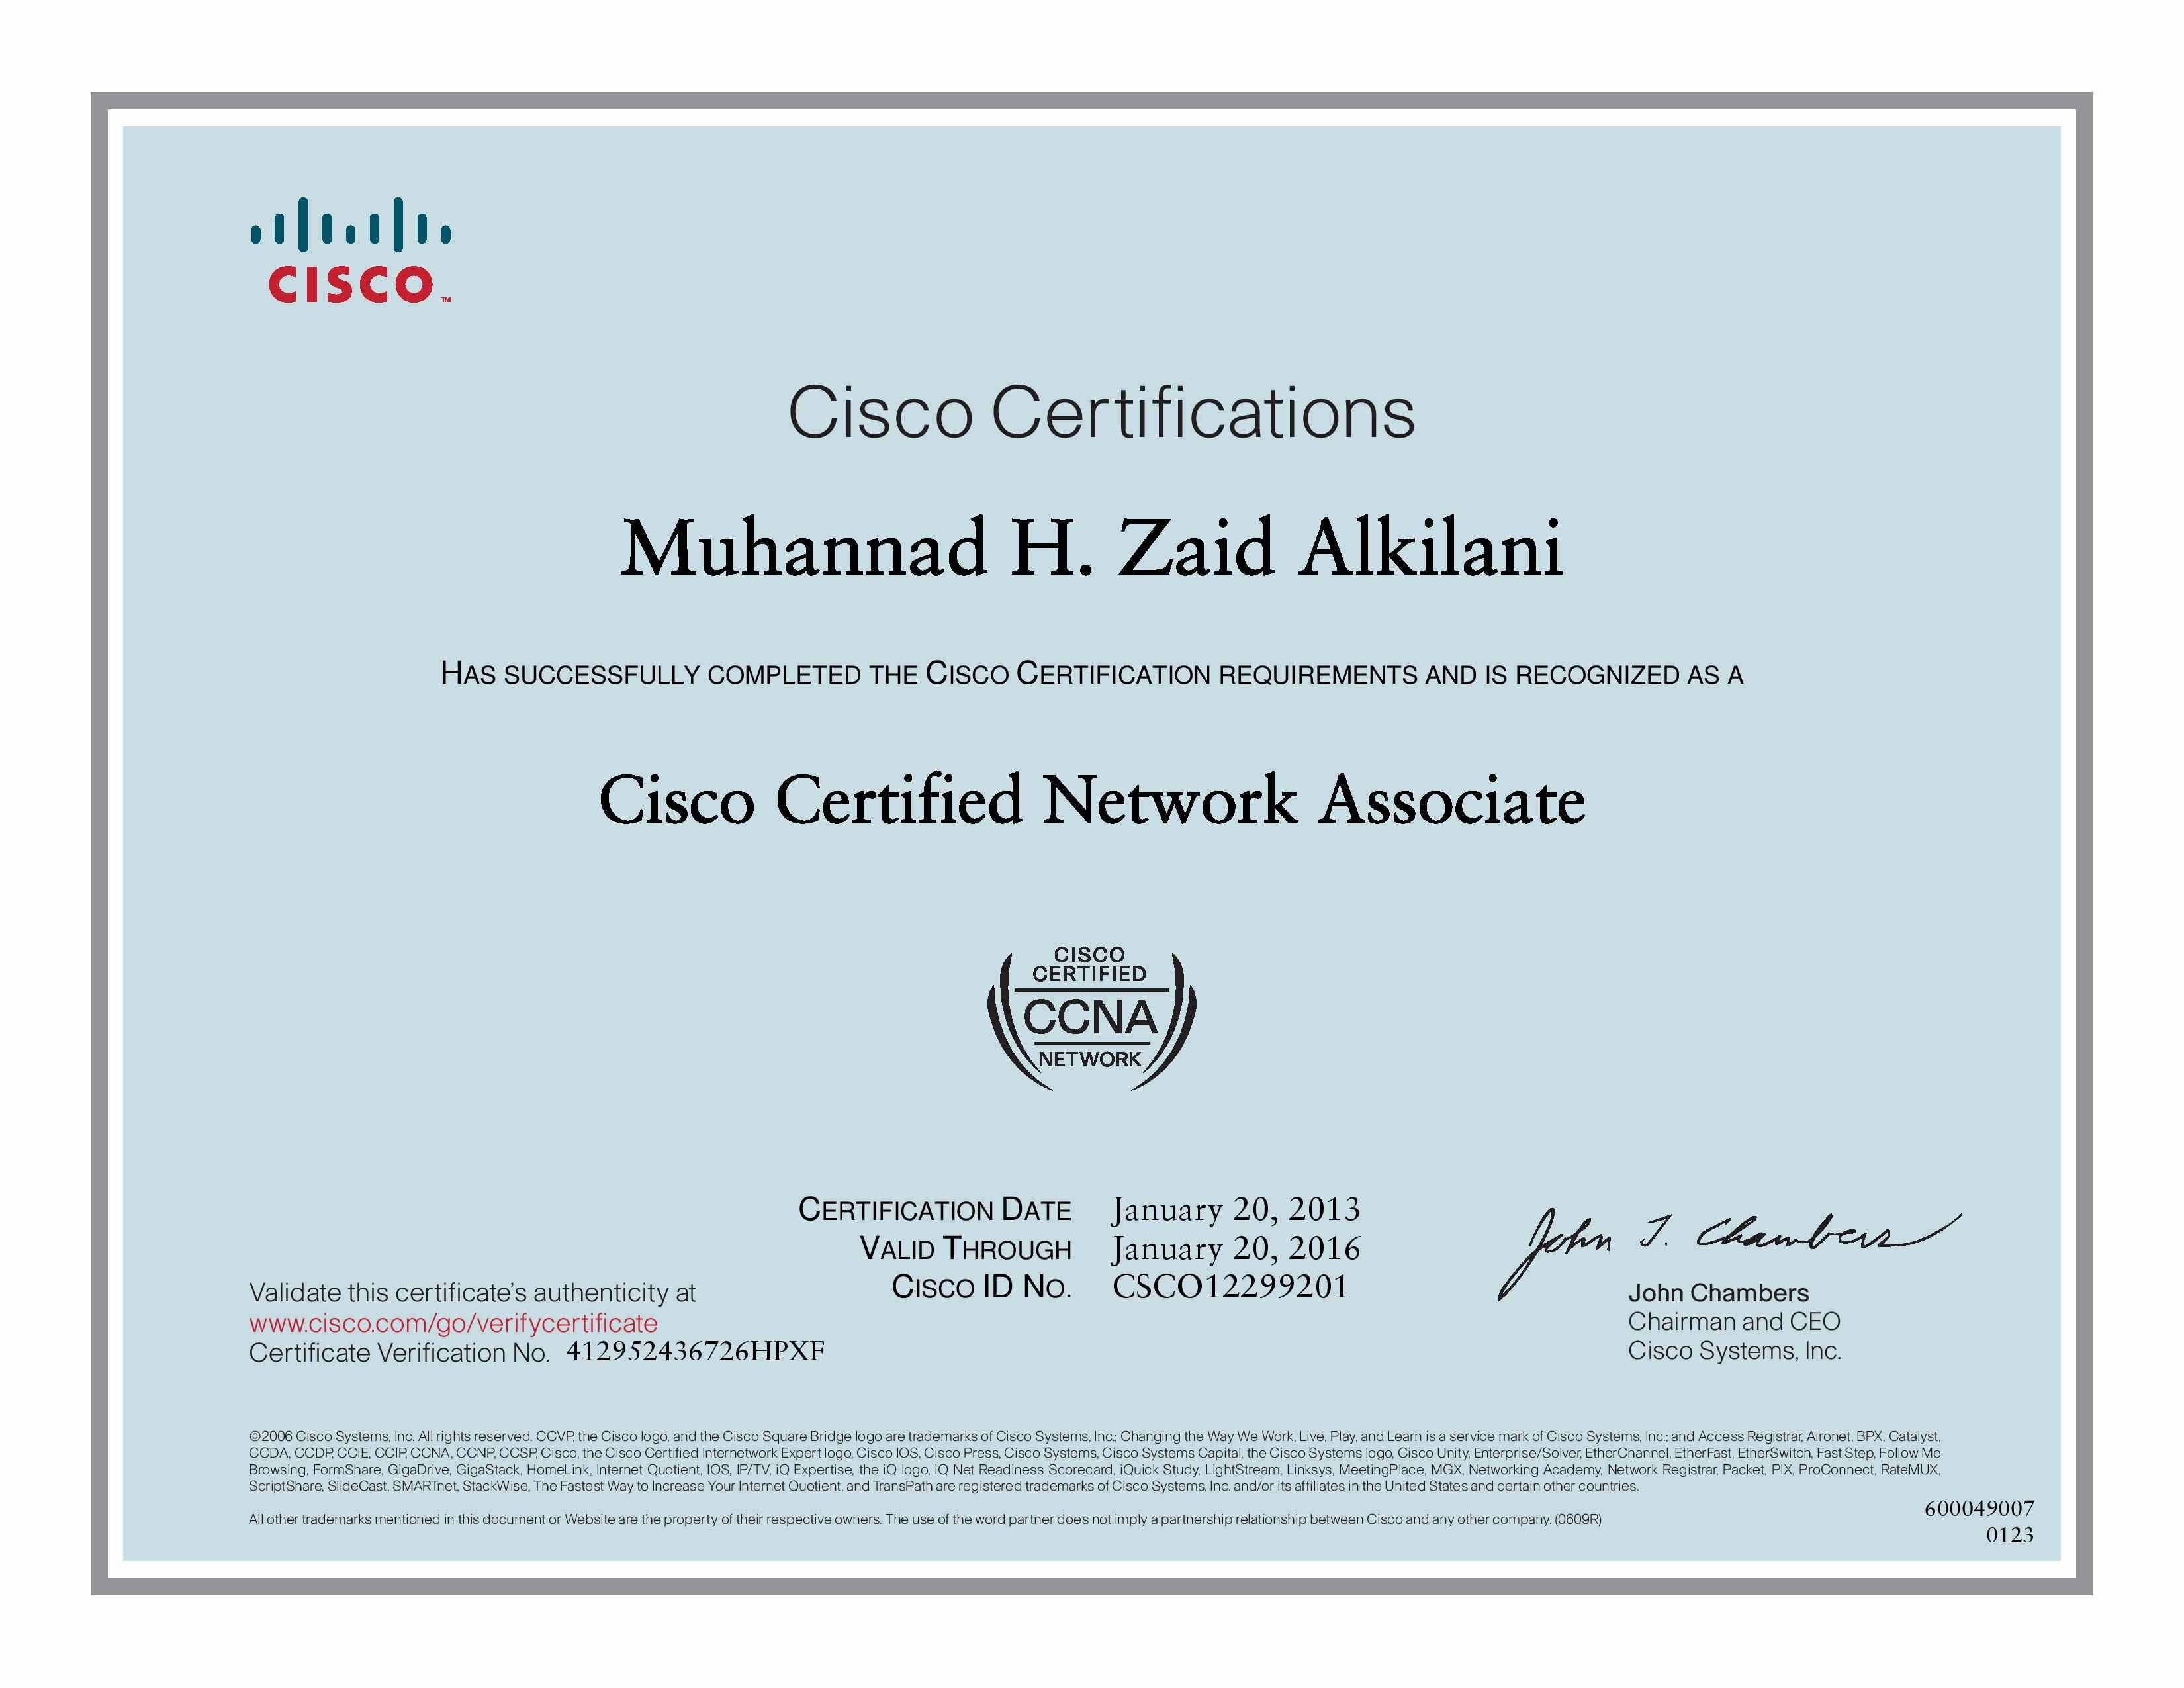 Cisco network associate resume beginner network administrator download full resume docpdf information technology it telecommunications cisco networking engineer muhannad kilani cyberoam itil ccna xflitez Gallery